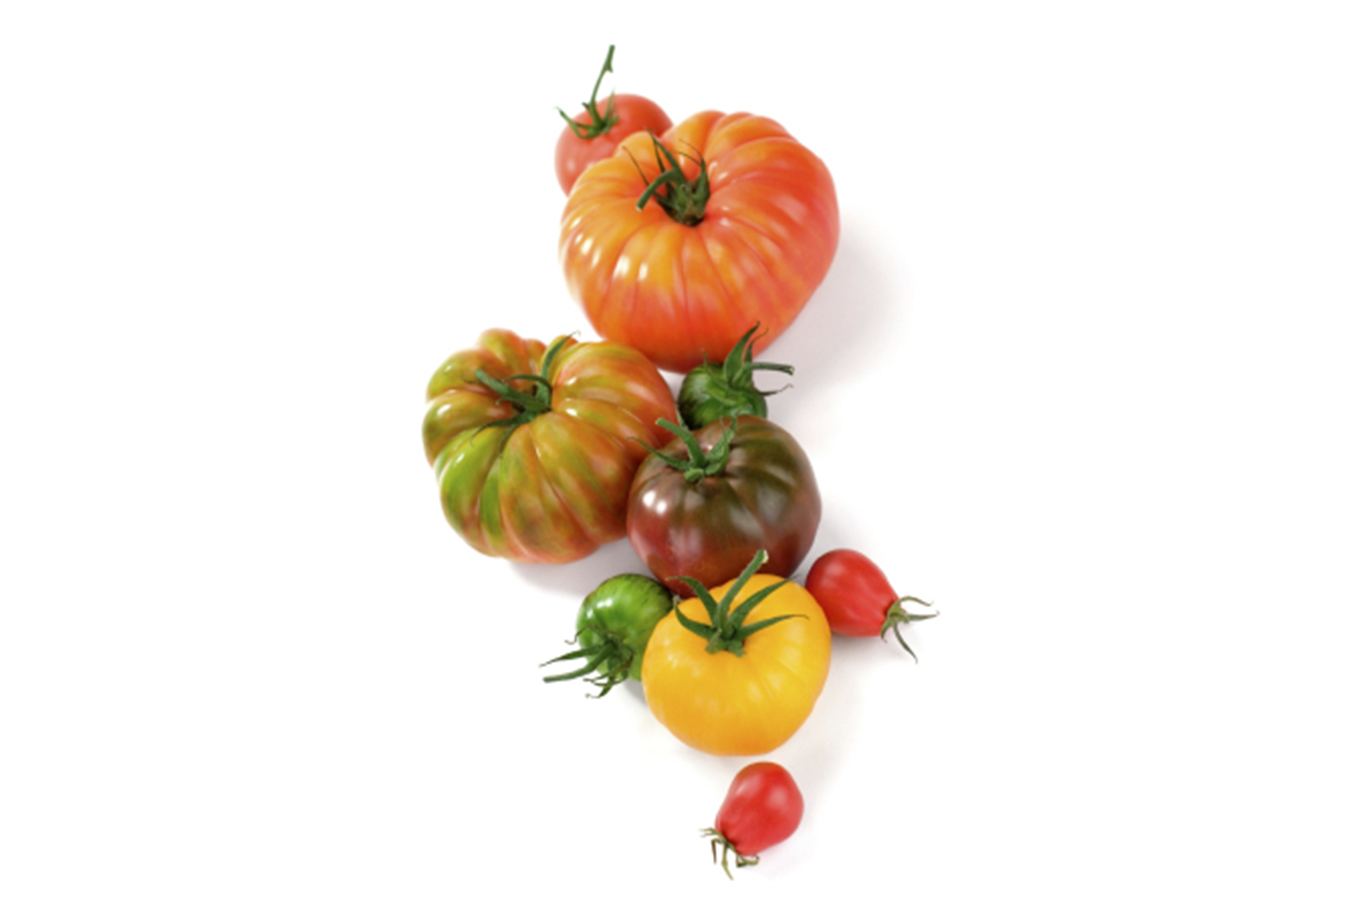 Tomatoes - Get 'em Fresh & Local While You Can